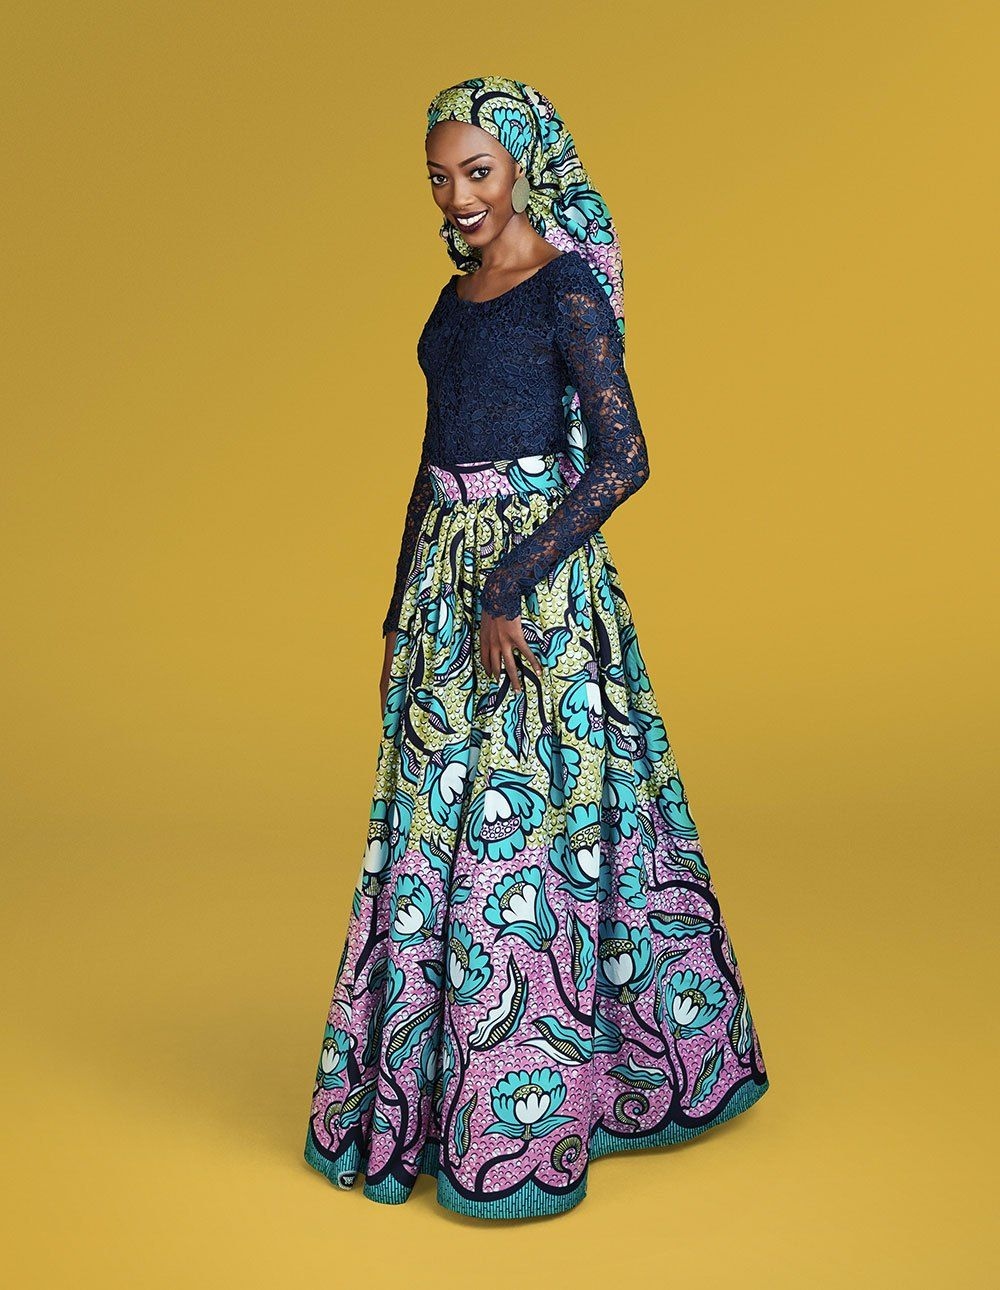 c518fe6a0237 Create your own African Fashion and be inspired by our Vlisco lookbook